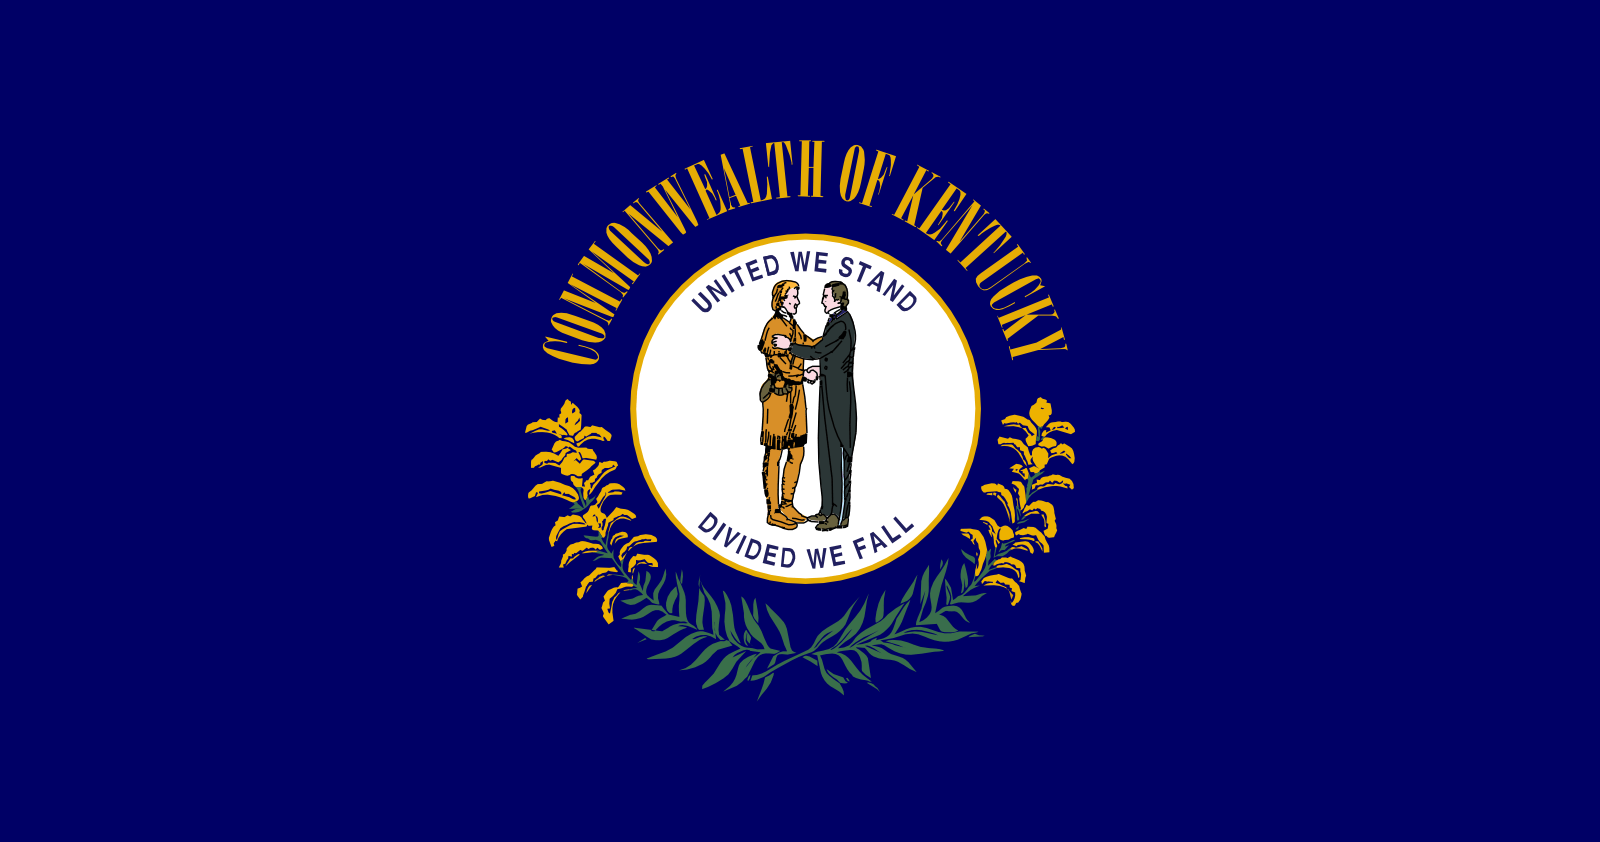 Who is the patron saint of Kentucky?